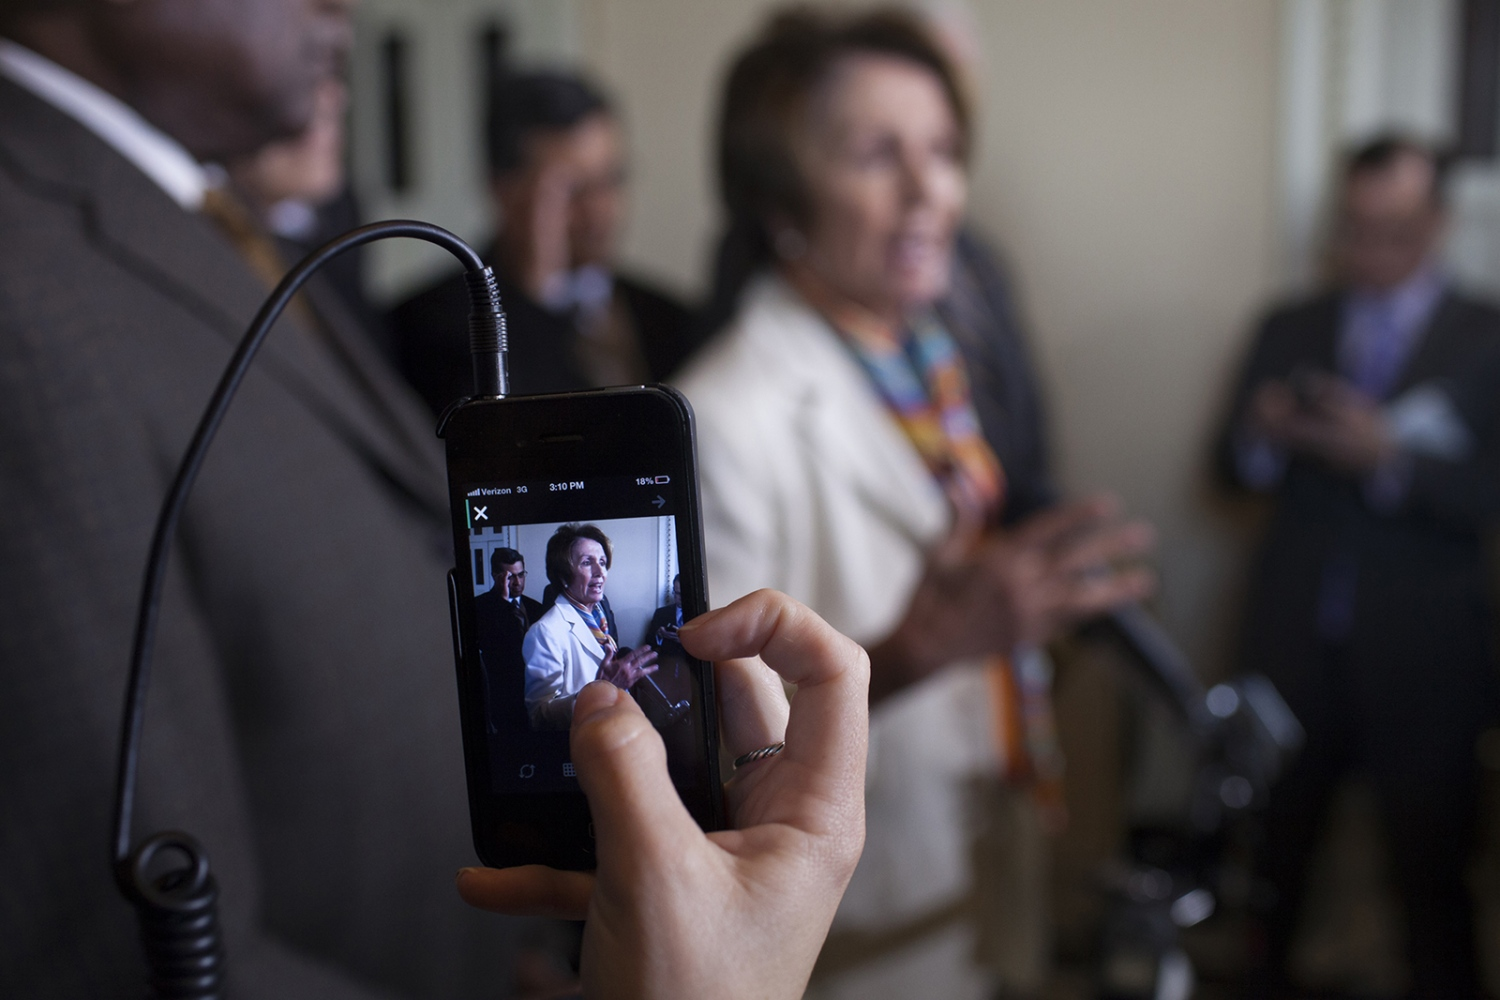 House Minority Leader Nancy Pelosi talks with the press about the government shutdown.